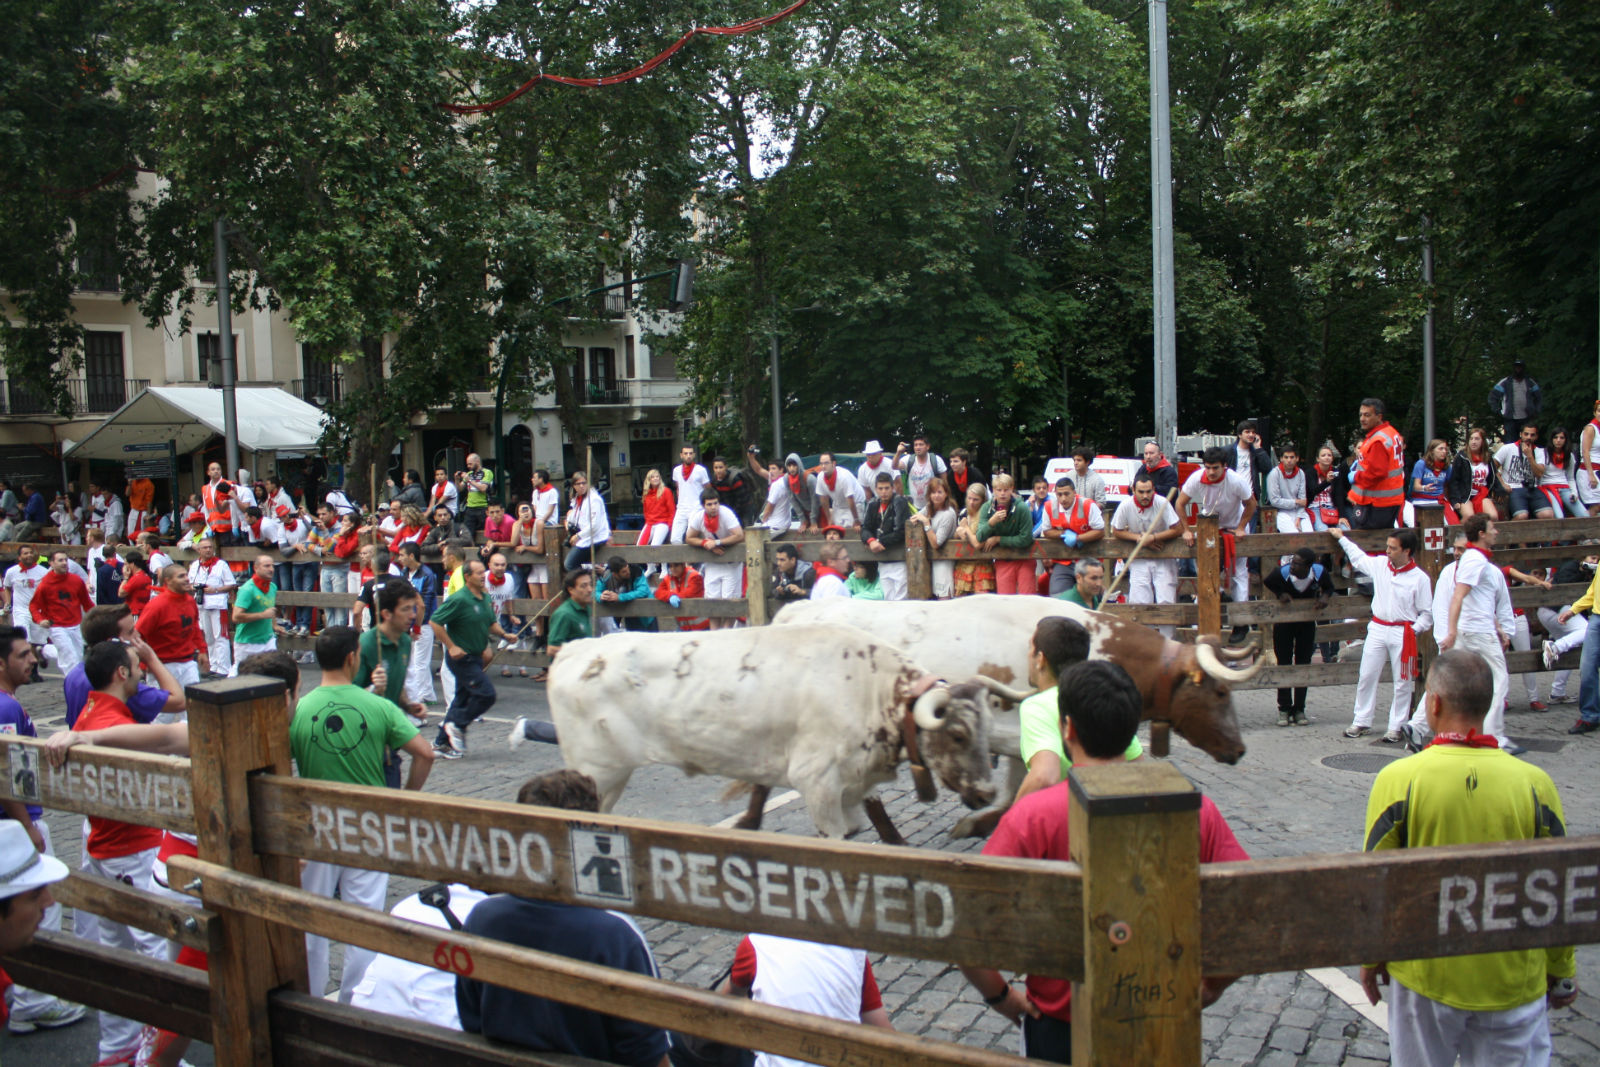 Surviving the running of the bulls